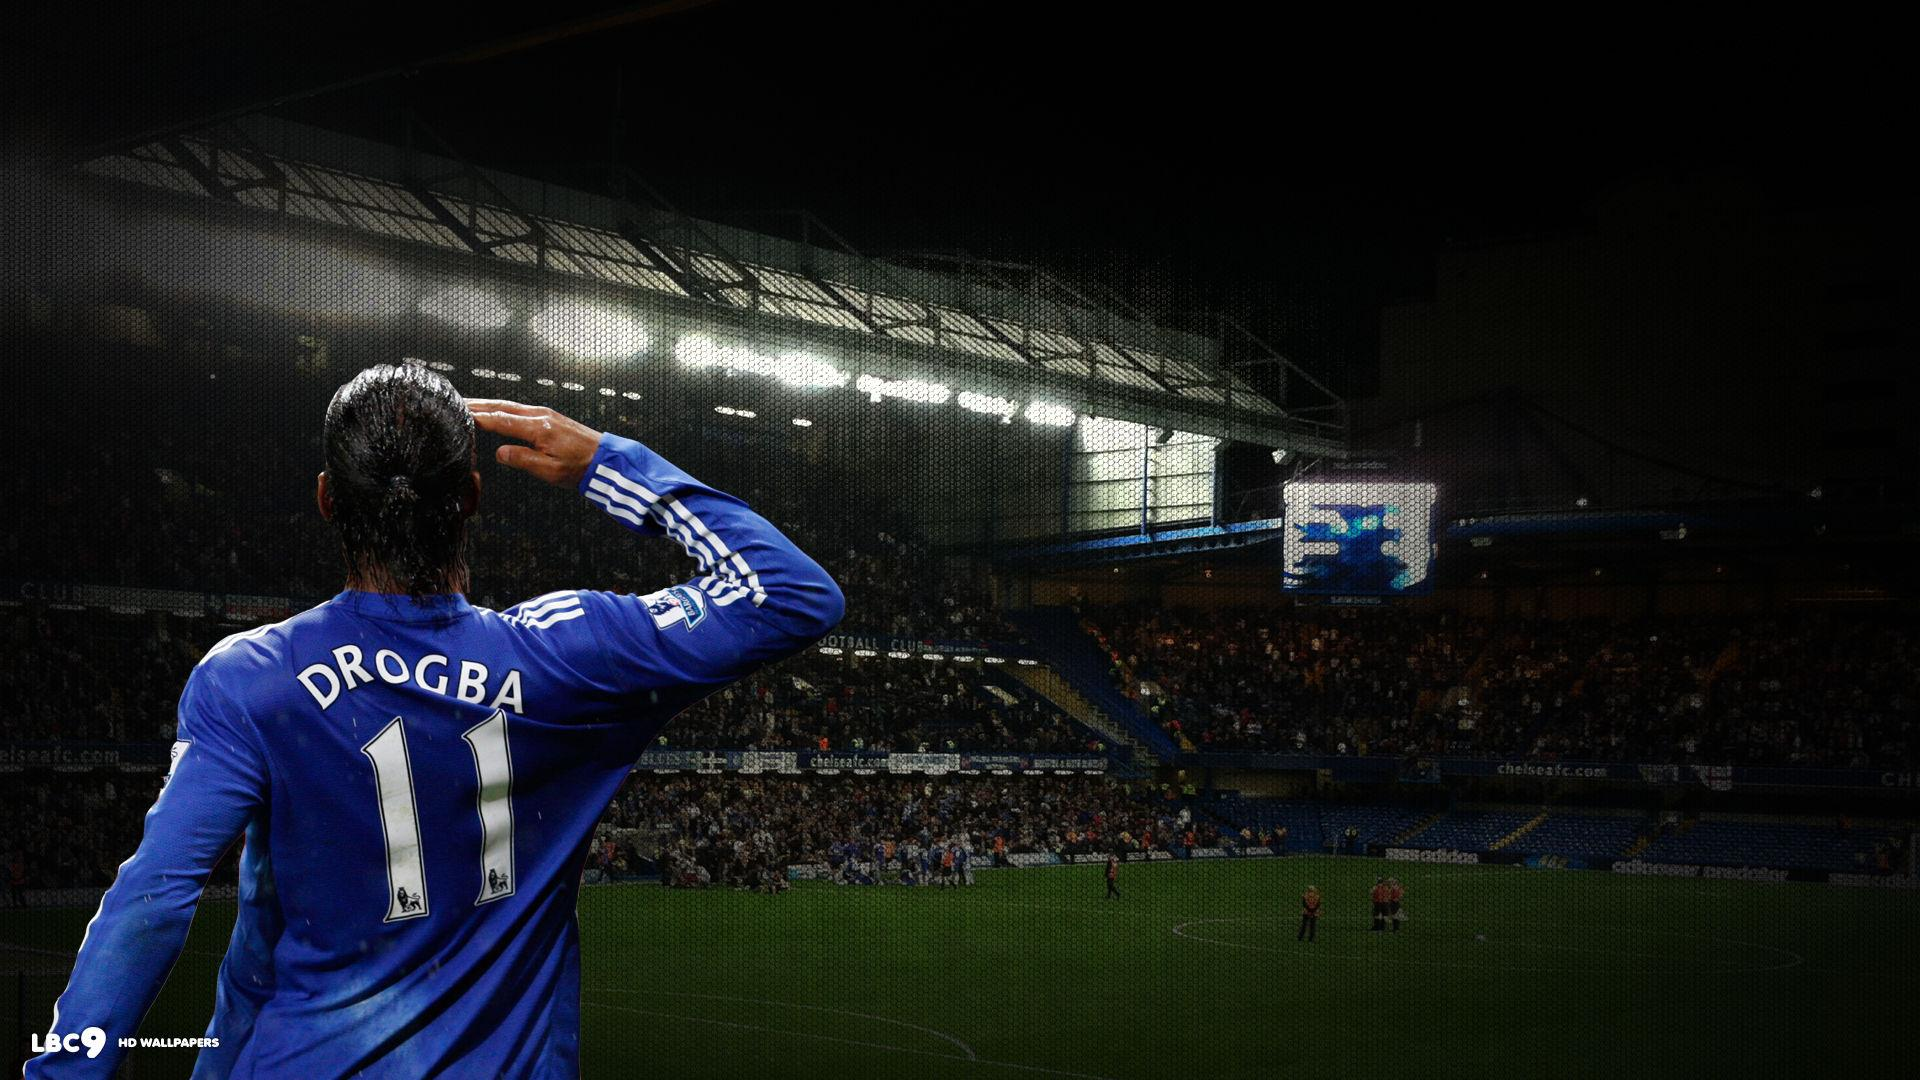 1920x1080 - Didier Drogba Wallpapers 15